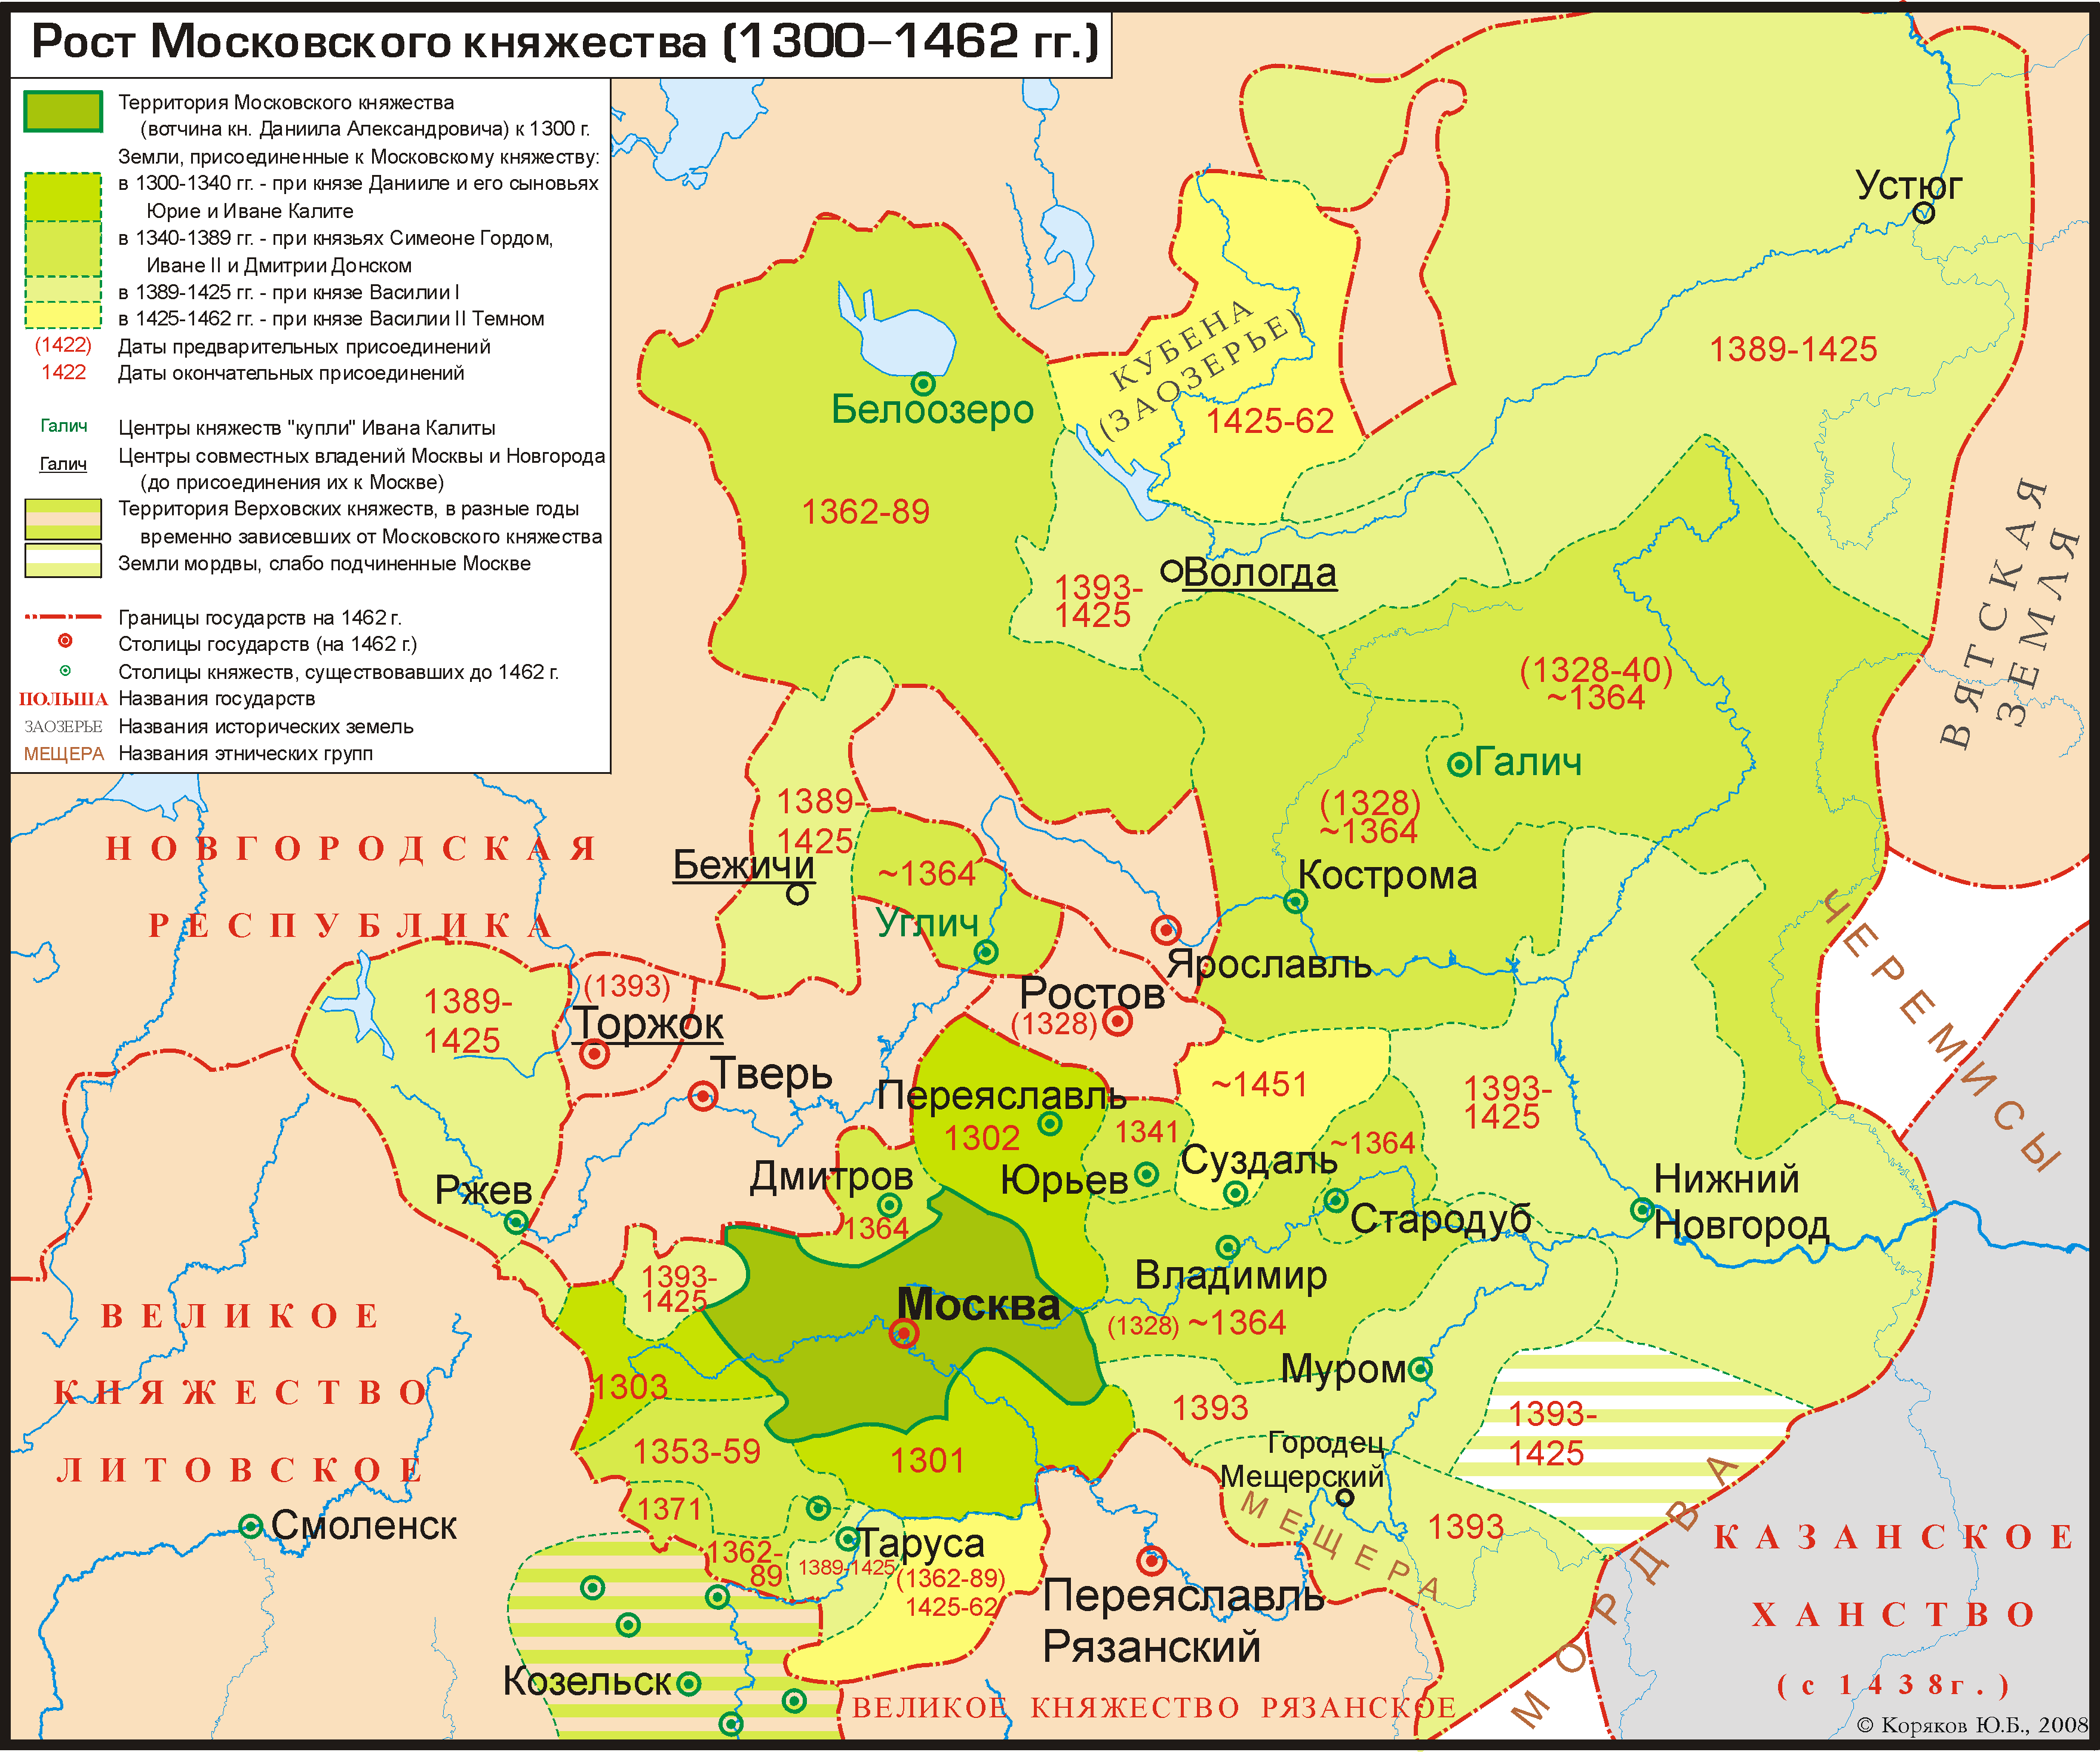 Файл:Muscovy 1300-1462.png